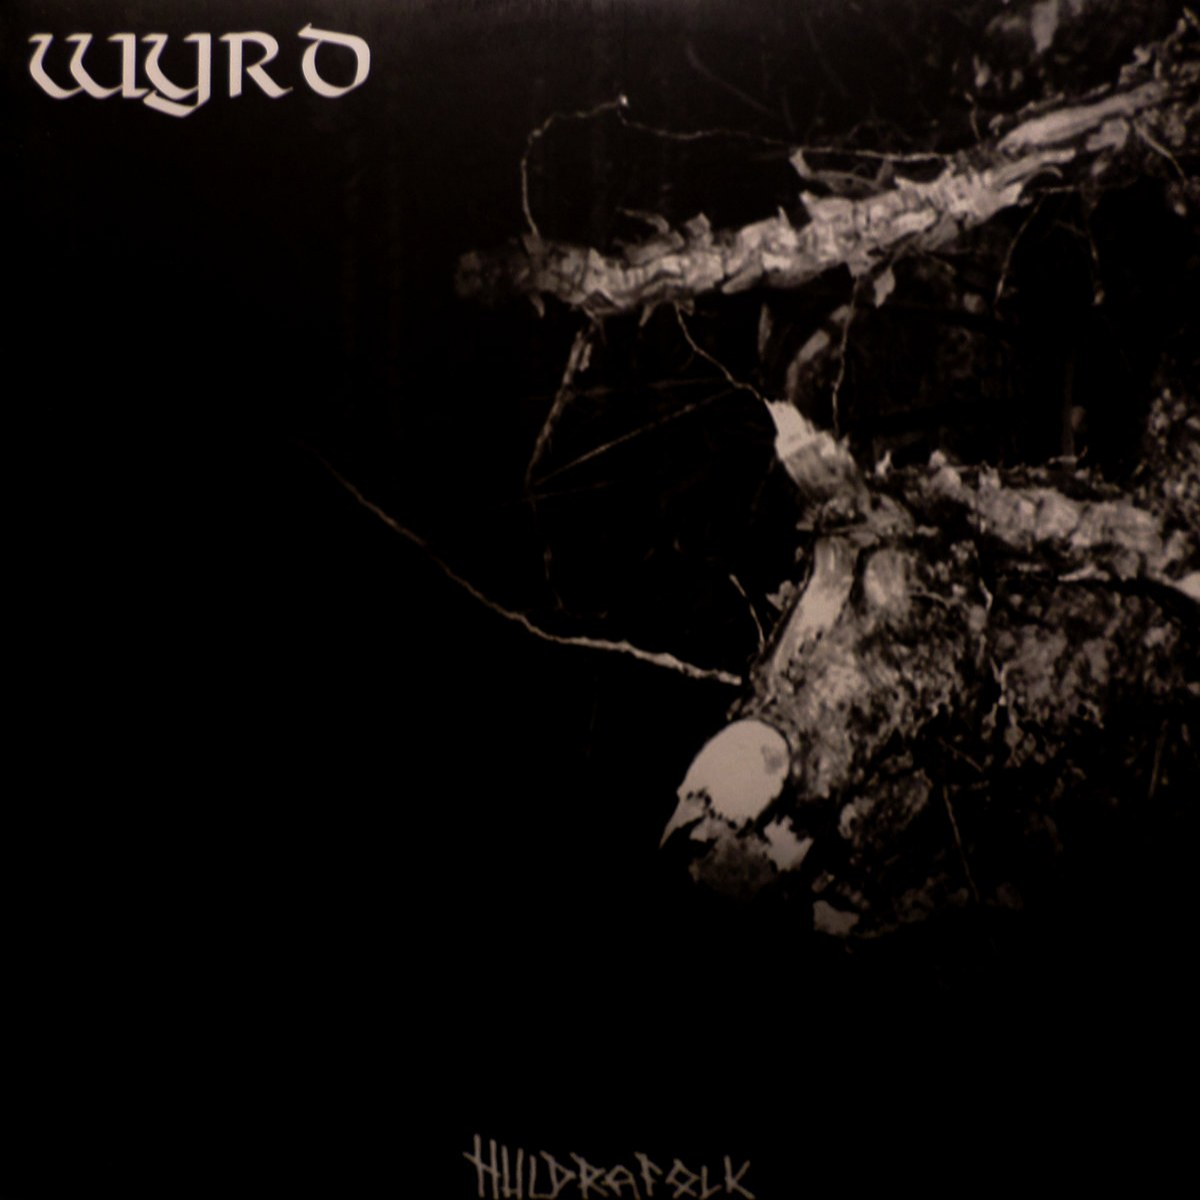 Review for Wyrd - Huldrafolk